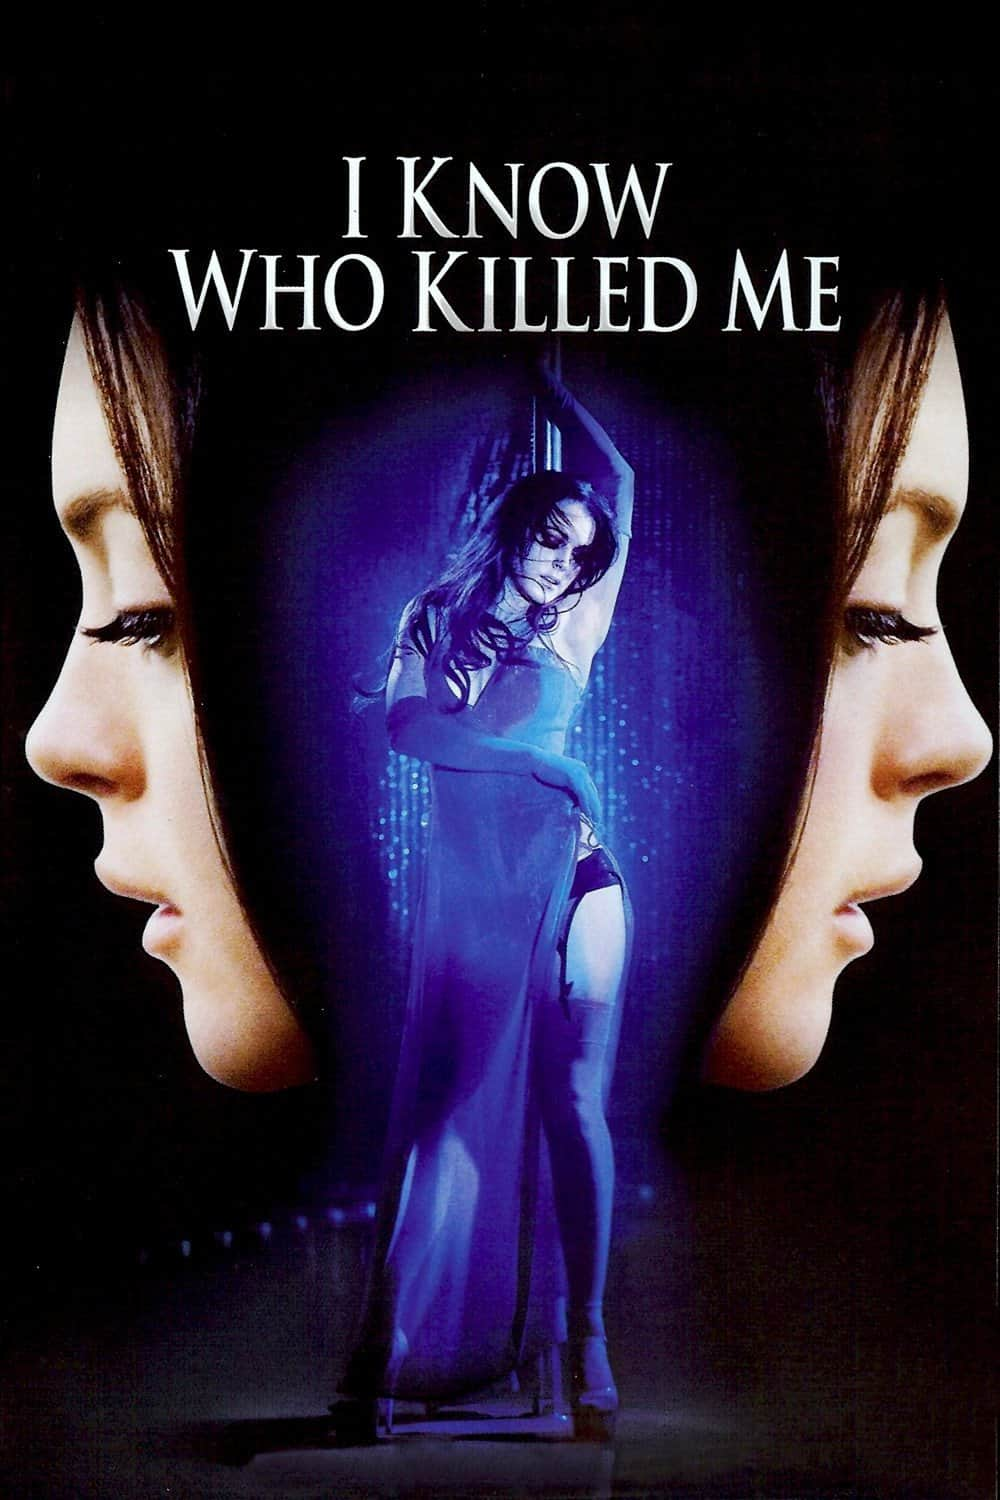 I Know Who Killed Me, 2007